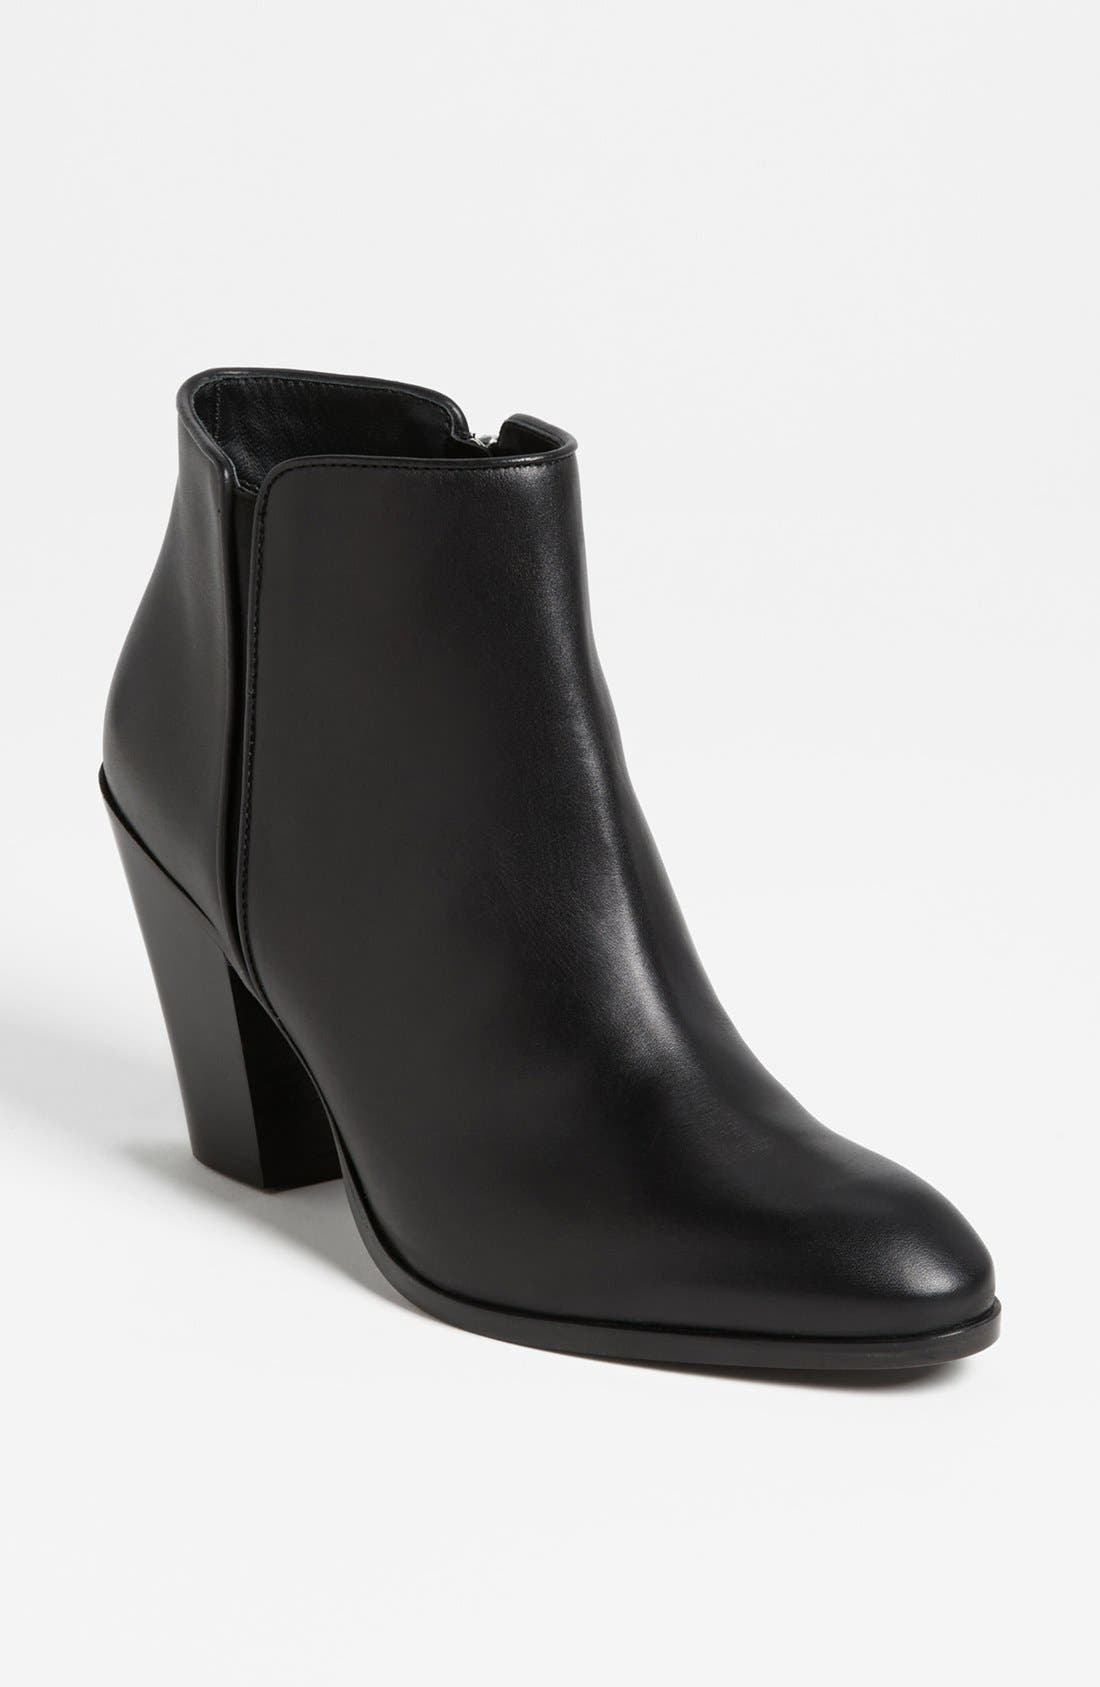 Alternate Image 1 Selected - Giuseppe Zanotti Ankle Bootie